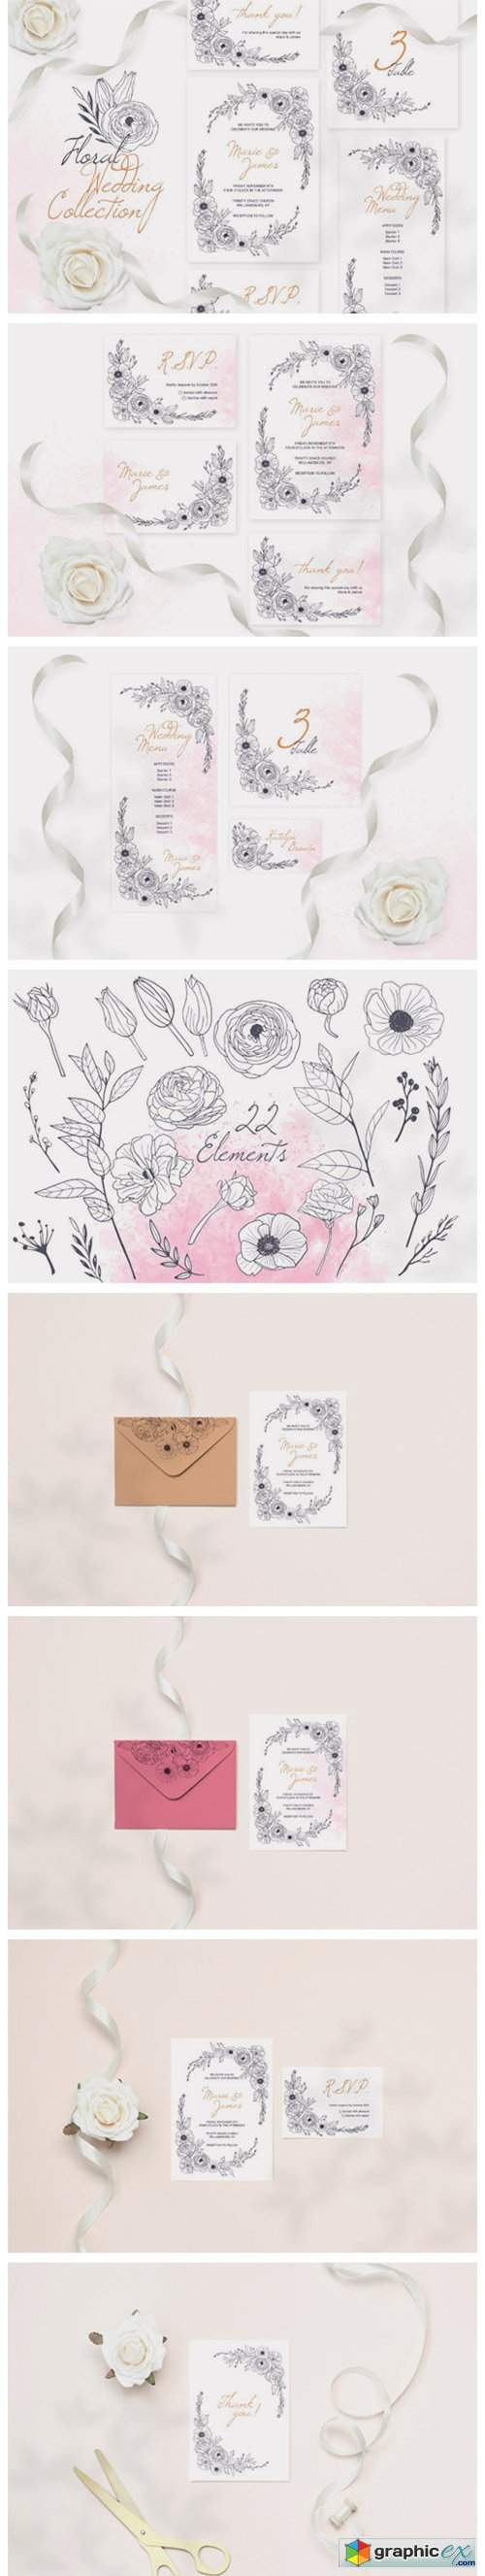 Floral Wedding Cards Monochrome Graphic